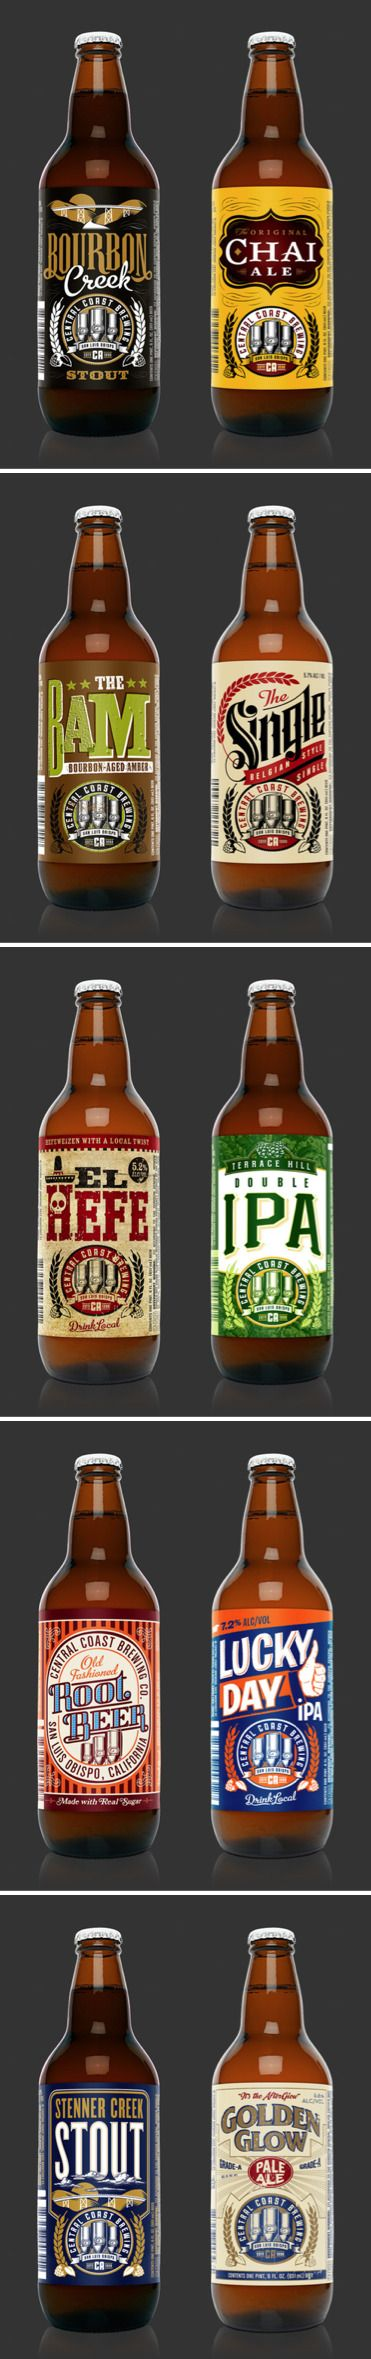 Stellar Beer Label Designs by Scott Greci #beer #foster #australia  Beer Club OZ presents – the Beer Cellar – ultimate source for imported beer in Australia  http://www.kangabulletin.com/online-shoppi (Beer Bottle Design)